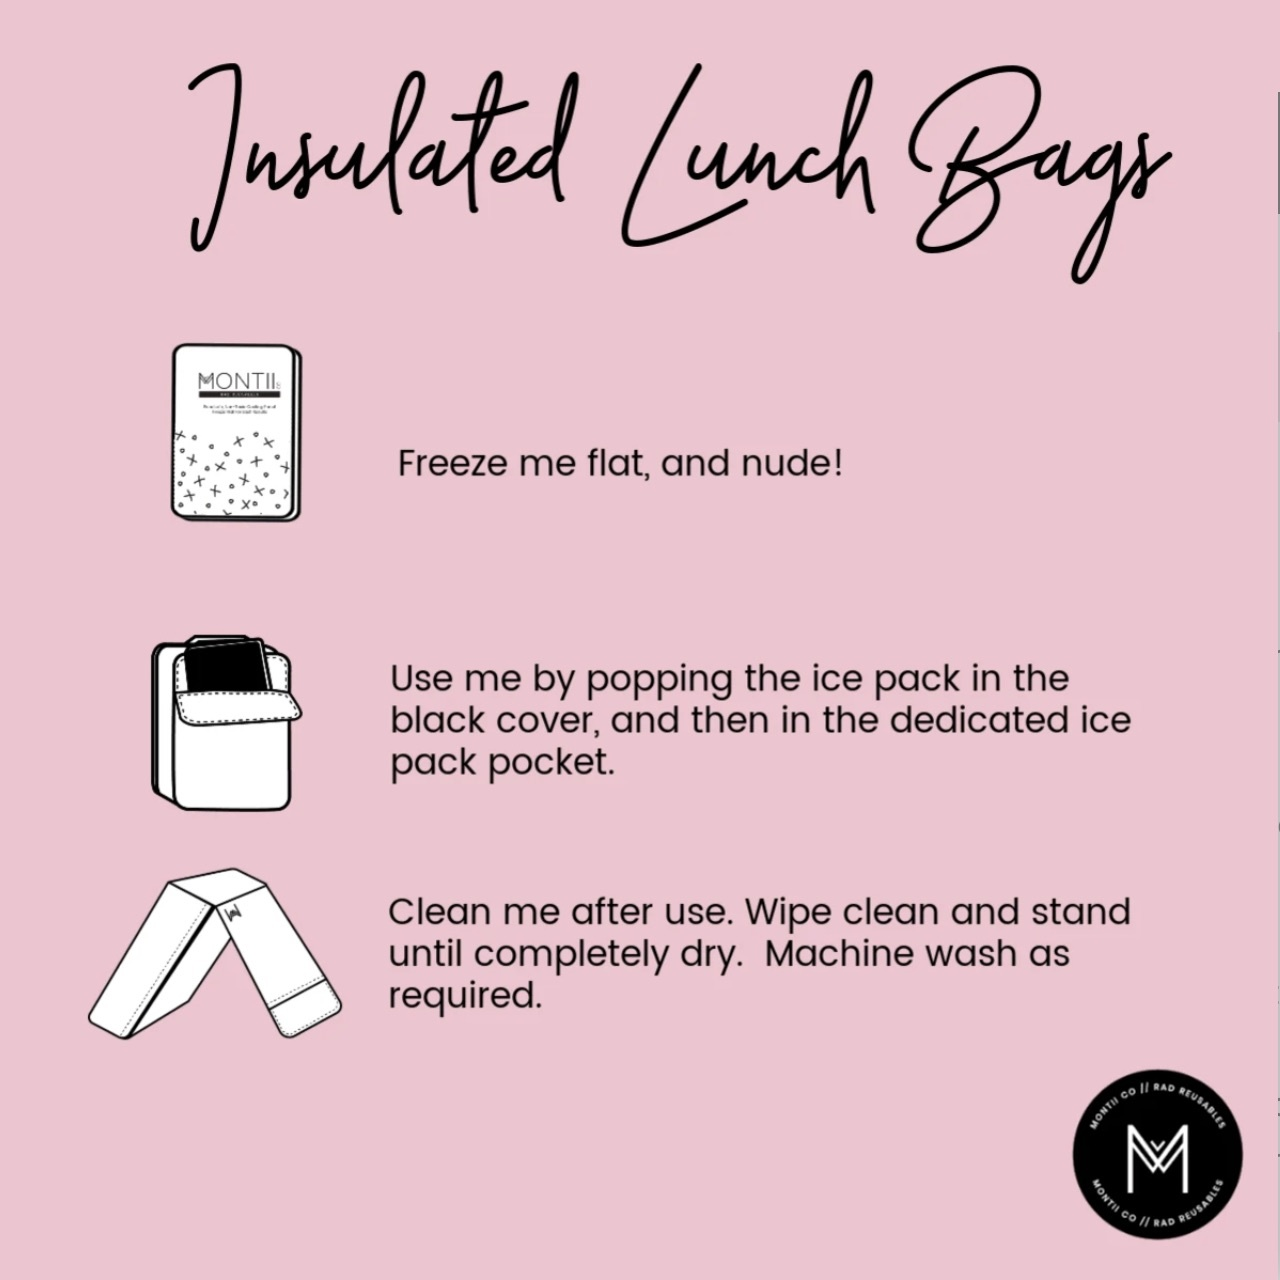 Montii insulated Lunch Bag - Meermaid-8